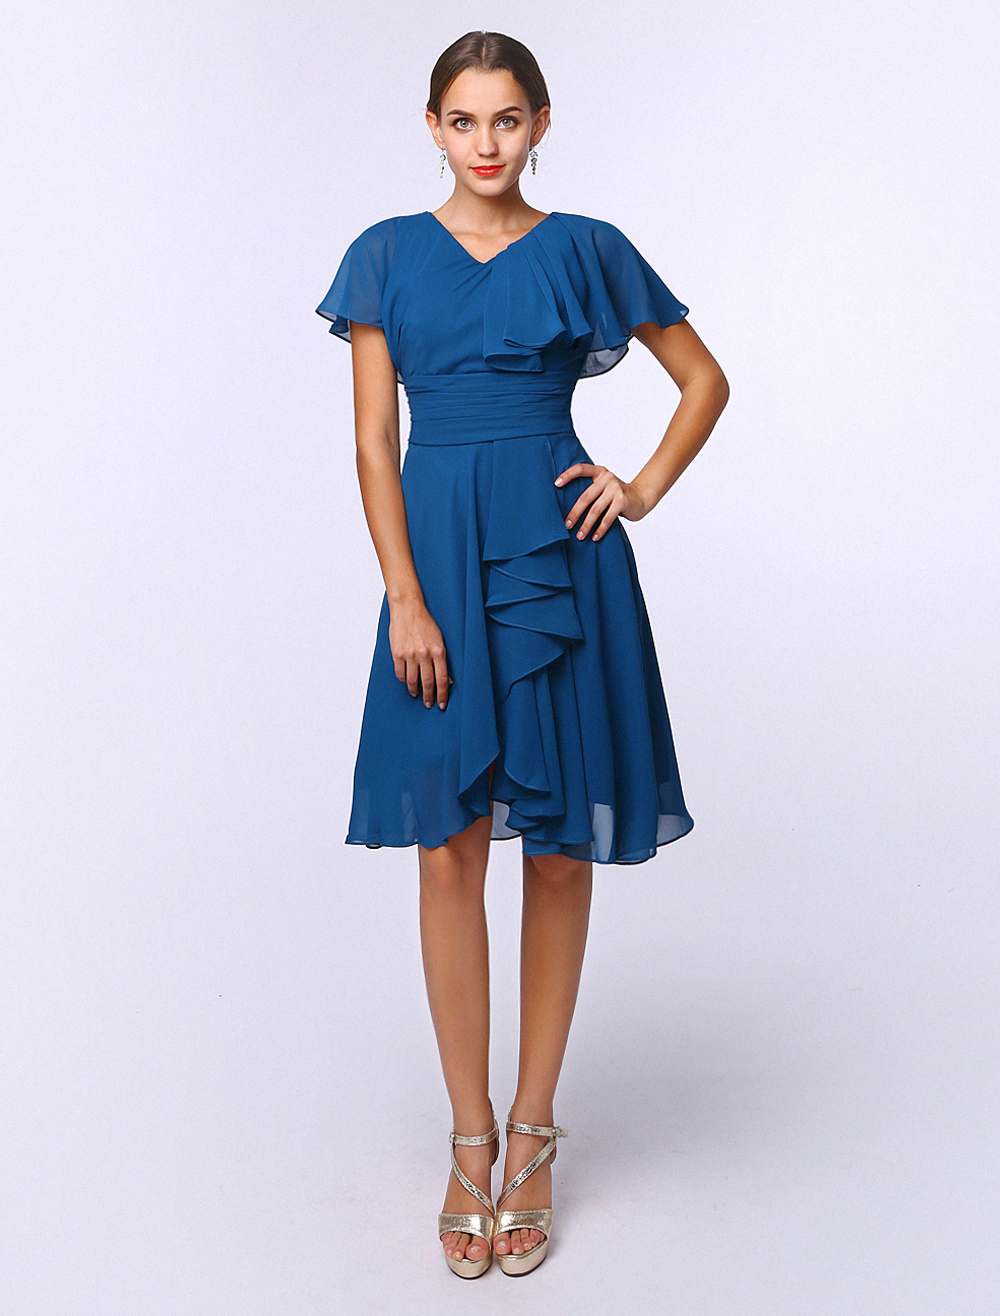 Buy Glamour Royal Blue A-line V-Neck Cascading Ruffle Short Sleeves Chiffon Bridal Mother Dress for $119.99 in Milanoo store